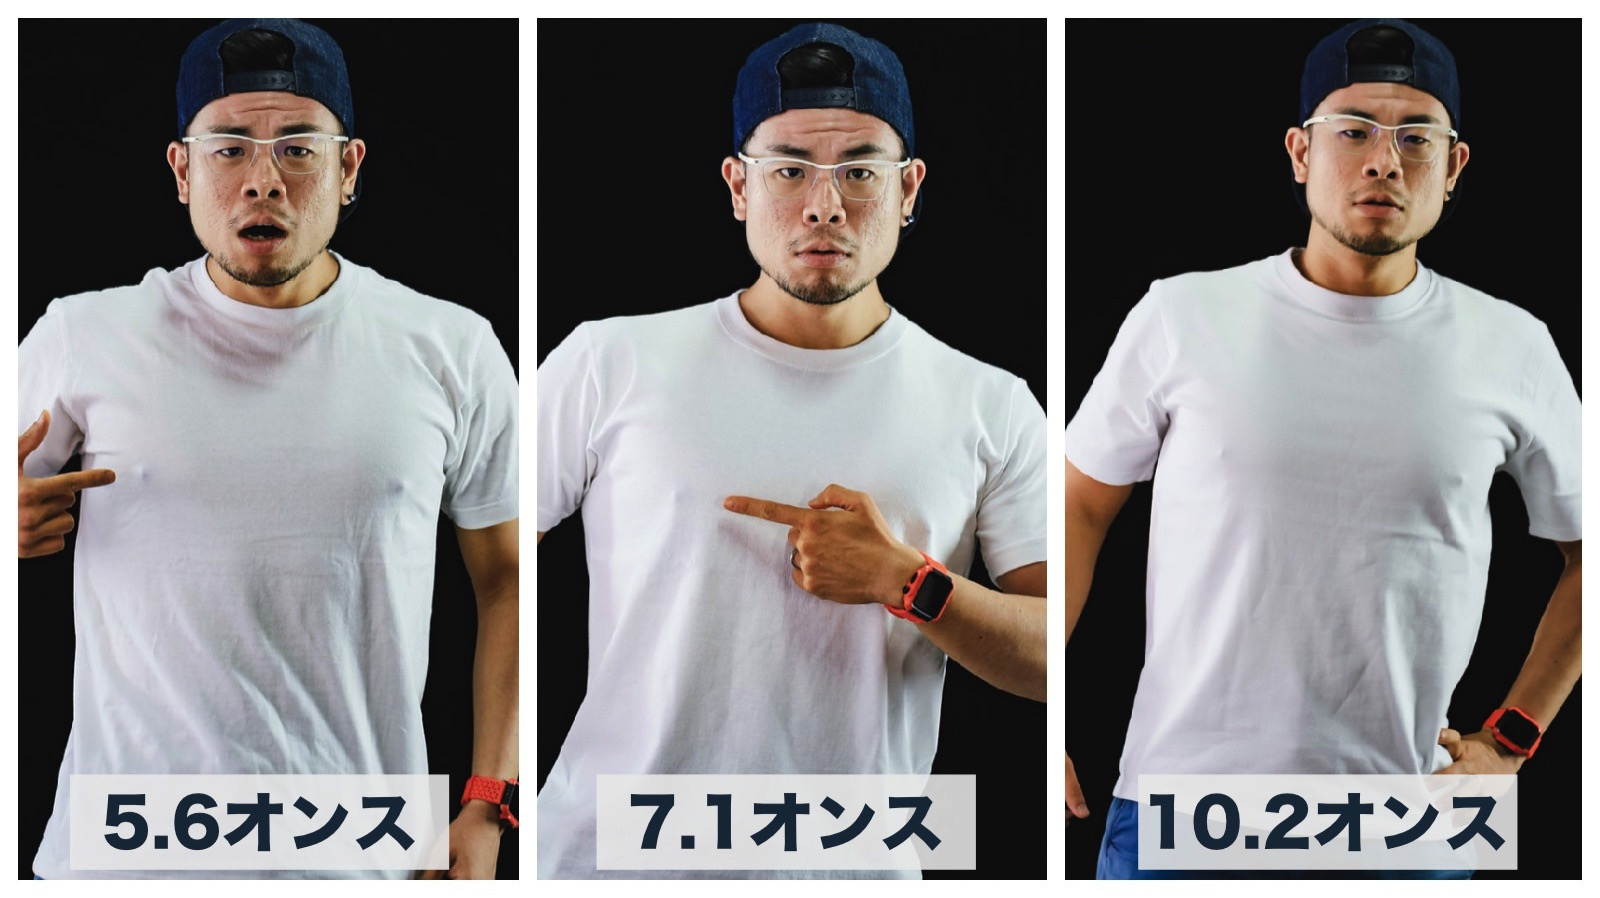 Three-Types-of-White-Tshirts-Compared-1-2.jpg